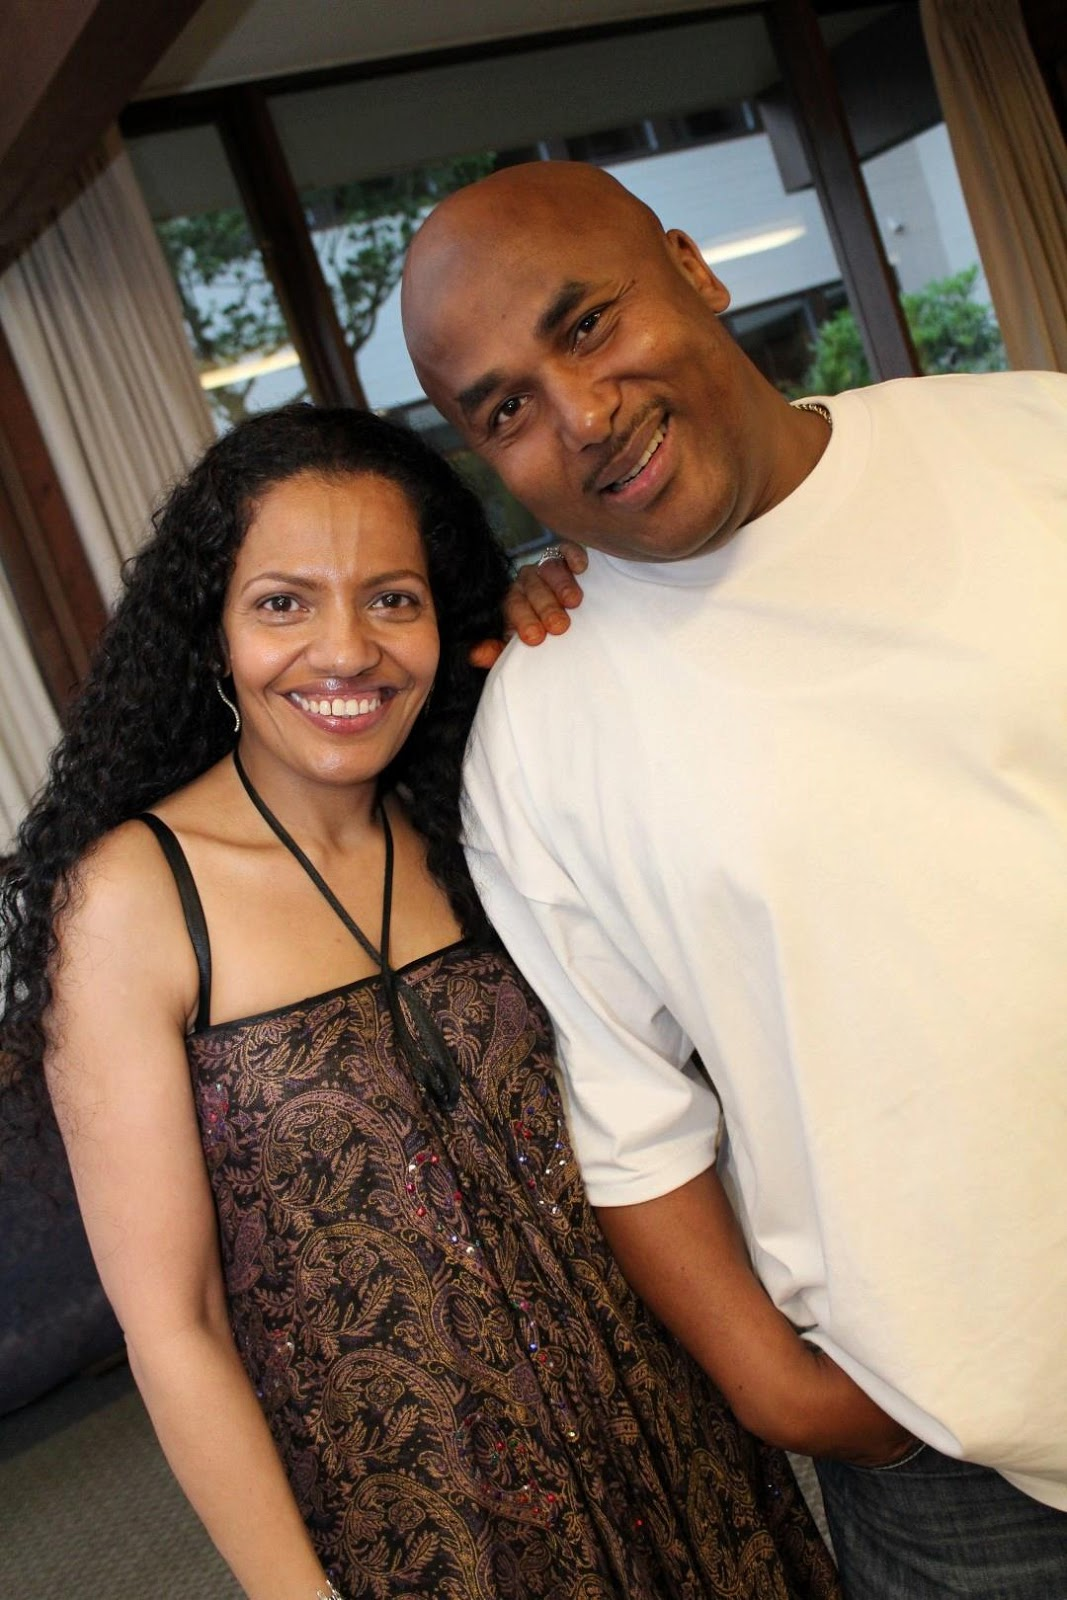 harvey black dating site Free to join & browse - 1000's of black women in harvey, illinois - interracial dating, relationships & marriage with ladies & females online.